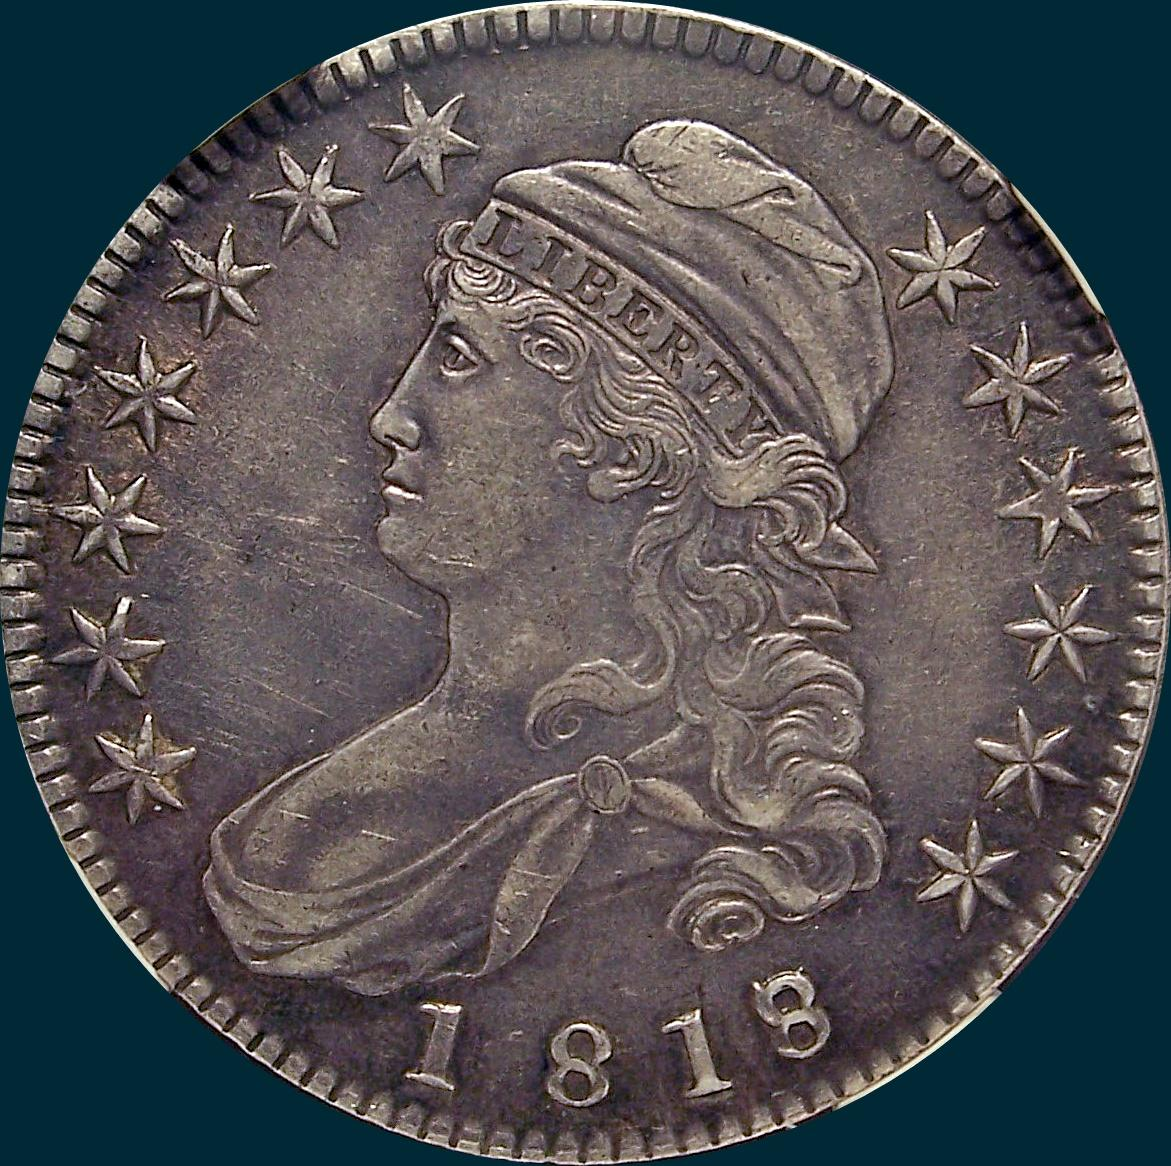 1818/7, O-102, Capped Bust, Half Dollar